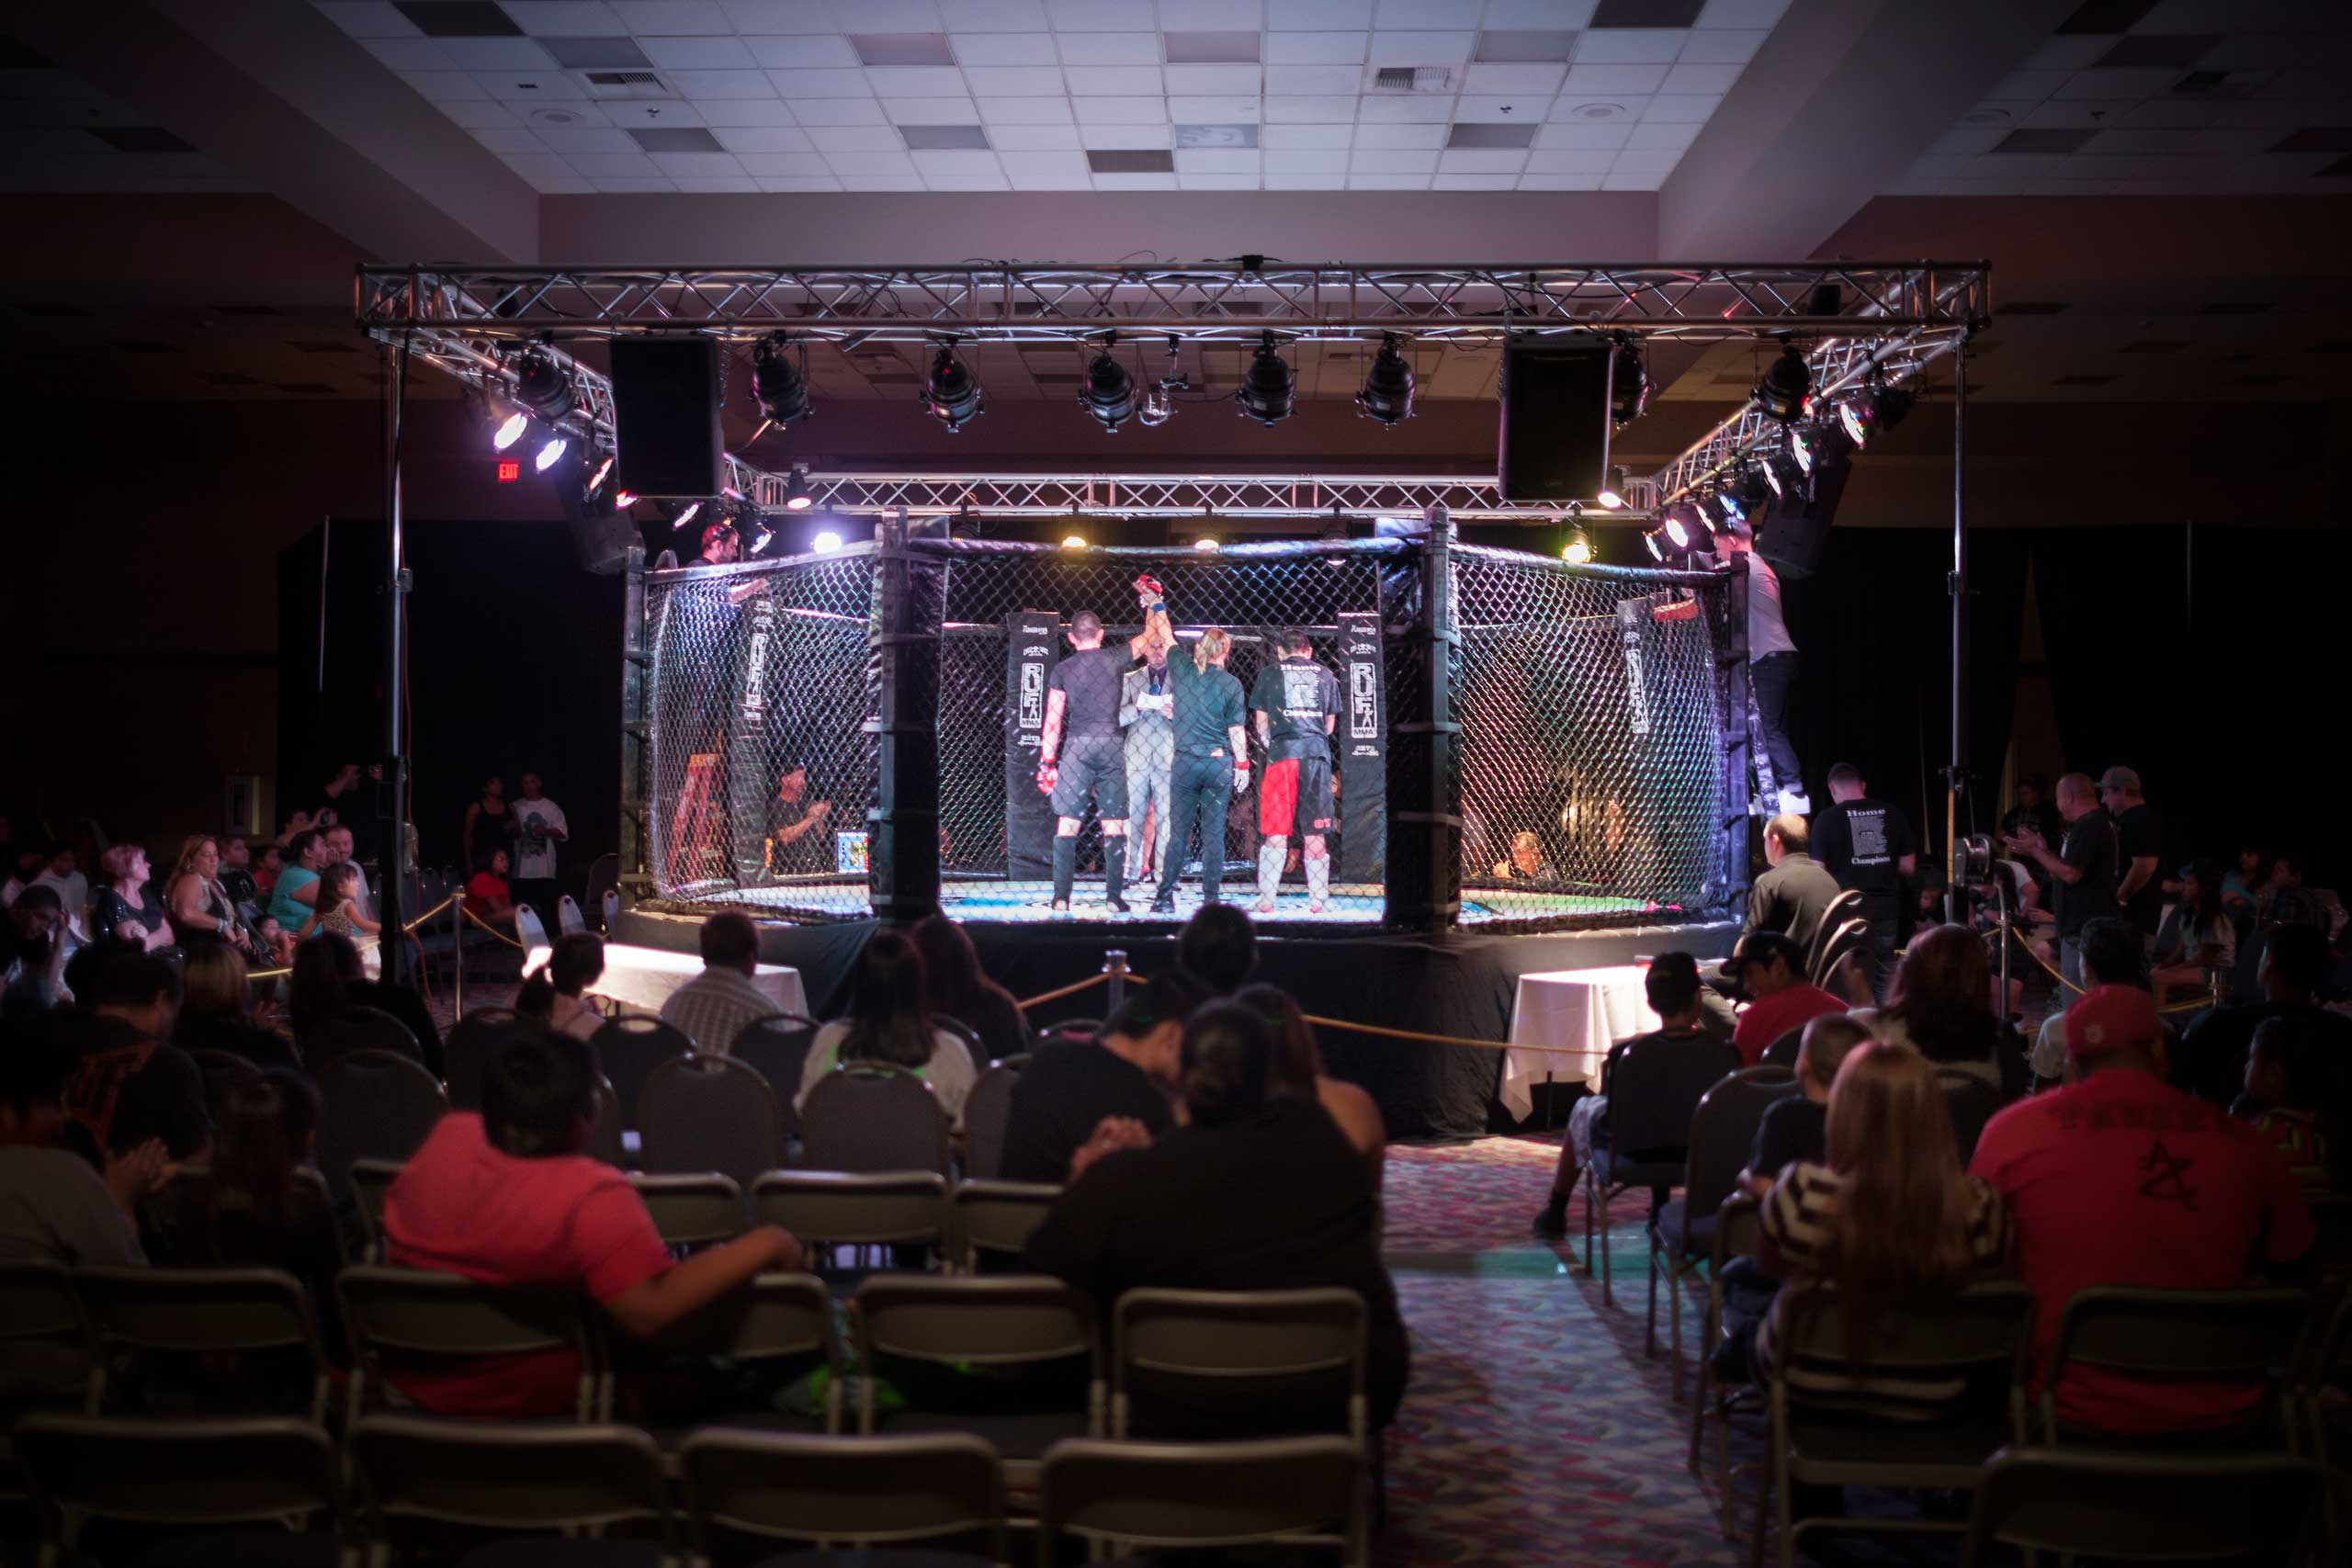 Young mixed martial arts fighters in the octagon in United States Fight League All-star Pankration show at Blue Water Casino in Parker, Arizona, Oct. 2013.